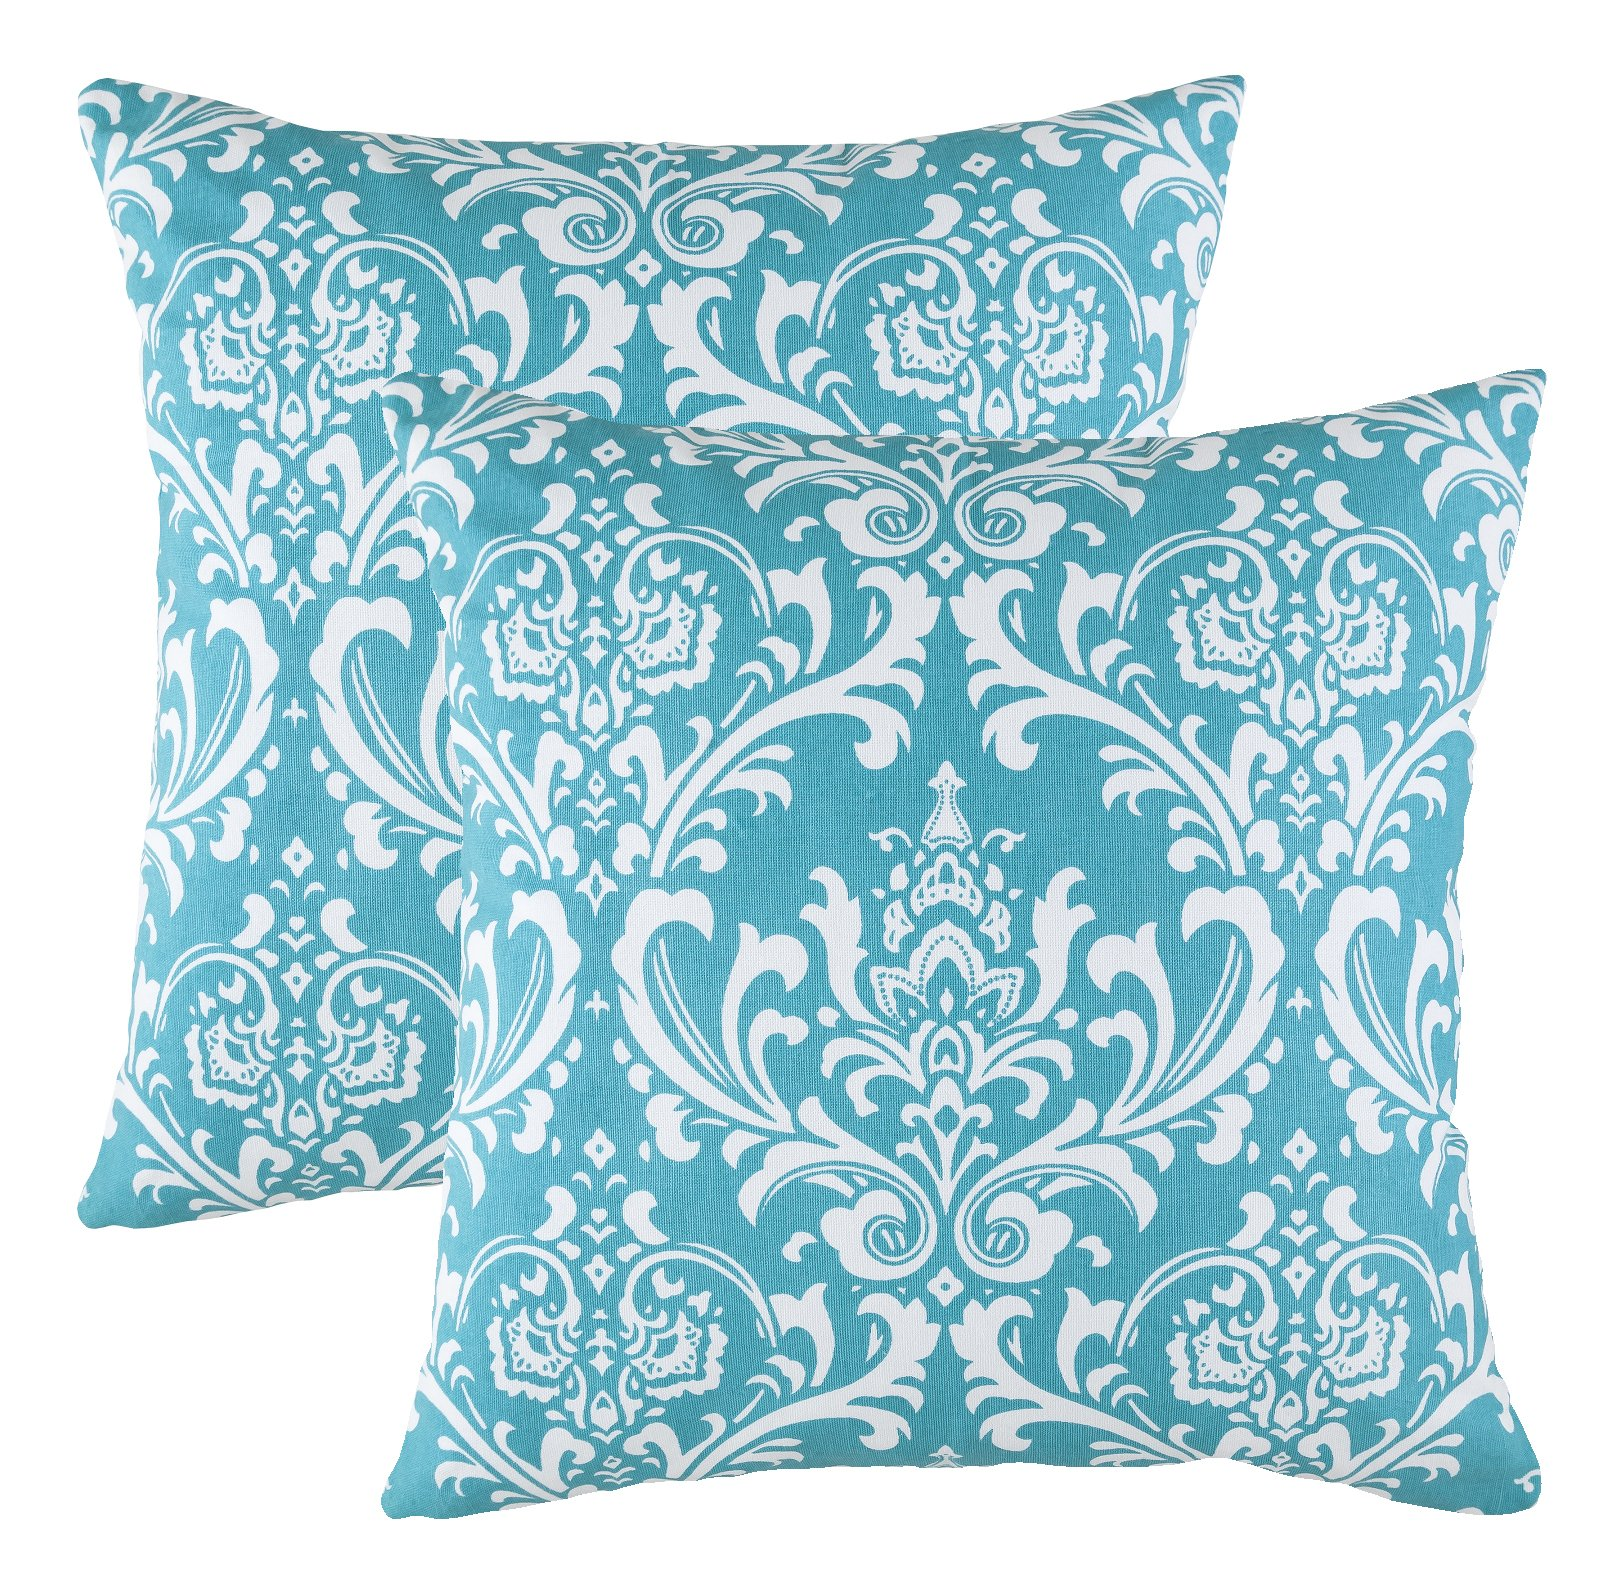 Throw Pillows Turquoise Amazon Com